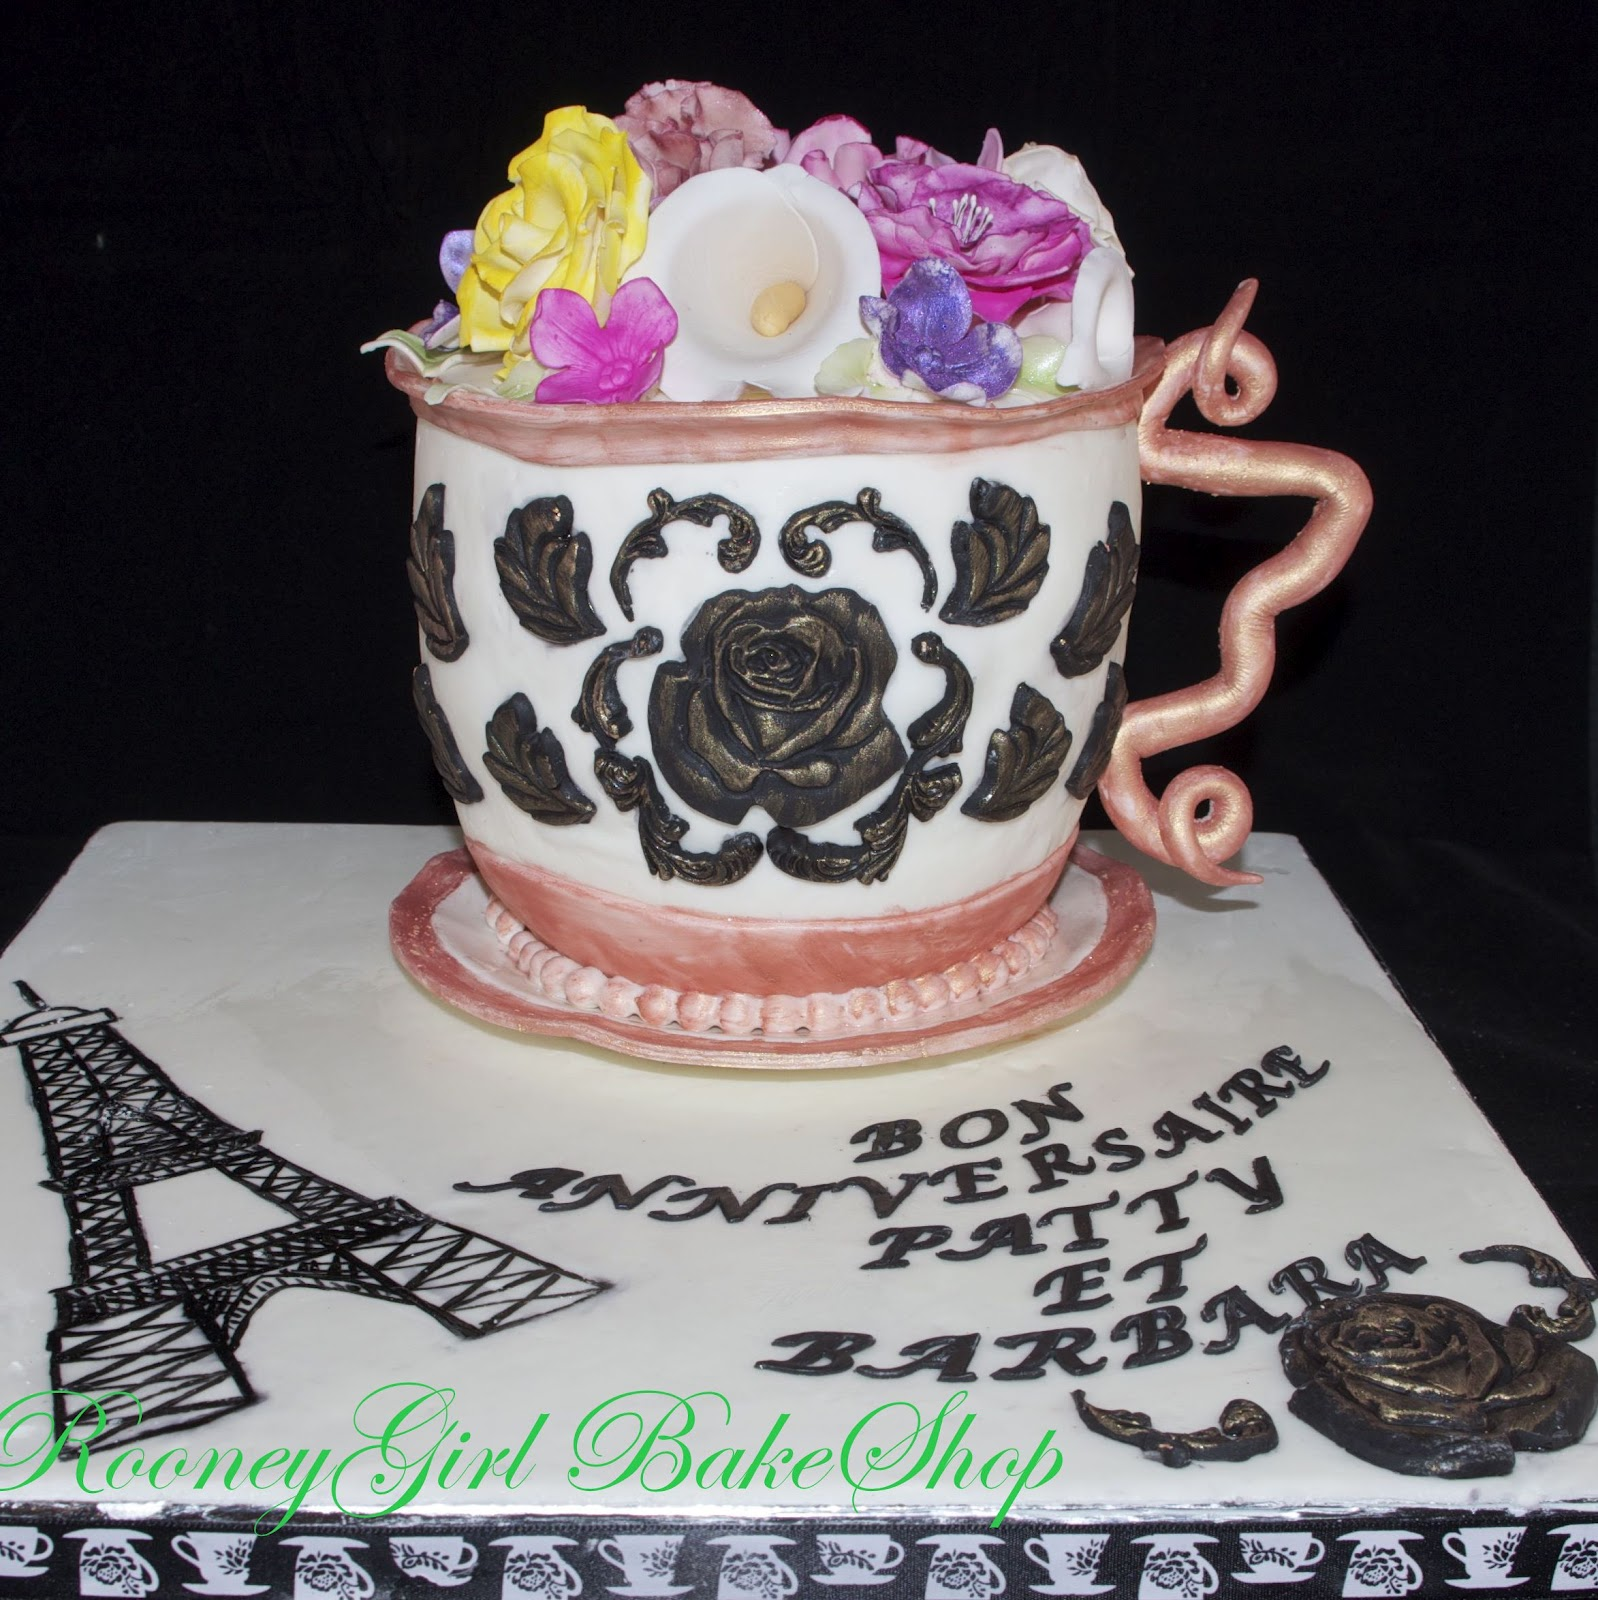 RooneyGirl Cupcakes: Starting from Scratch: Paris Teacup Cake